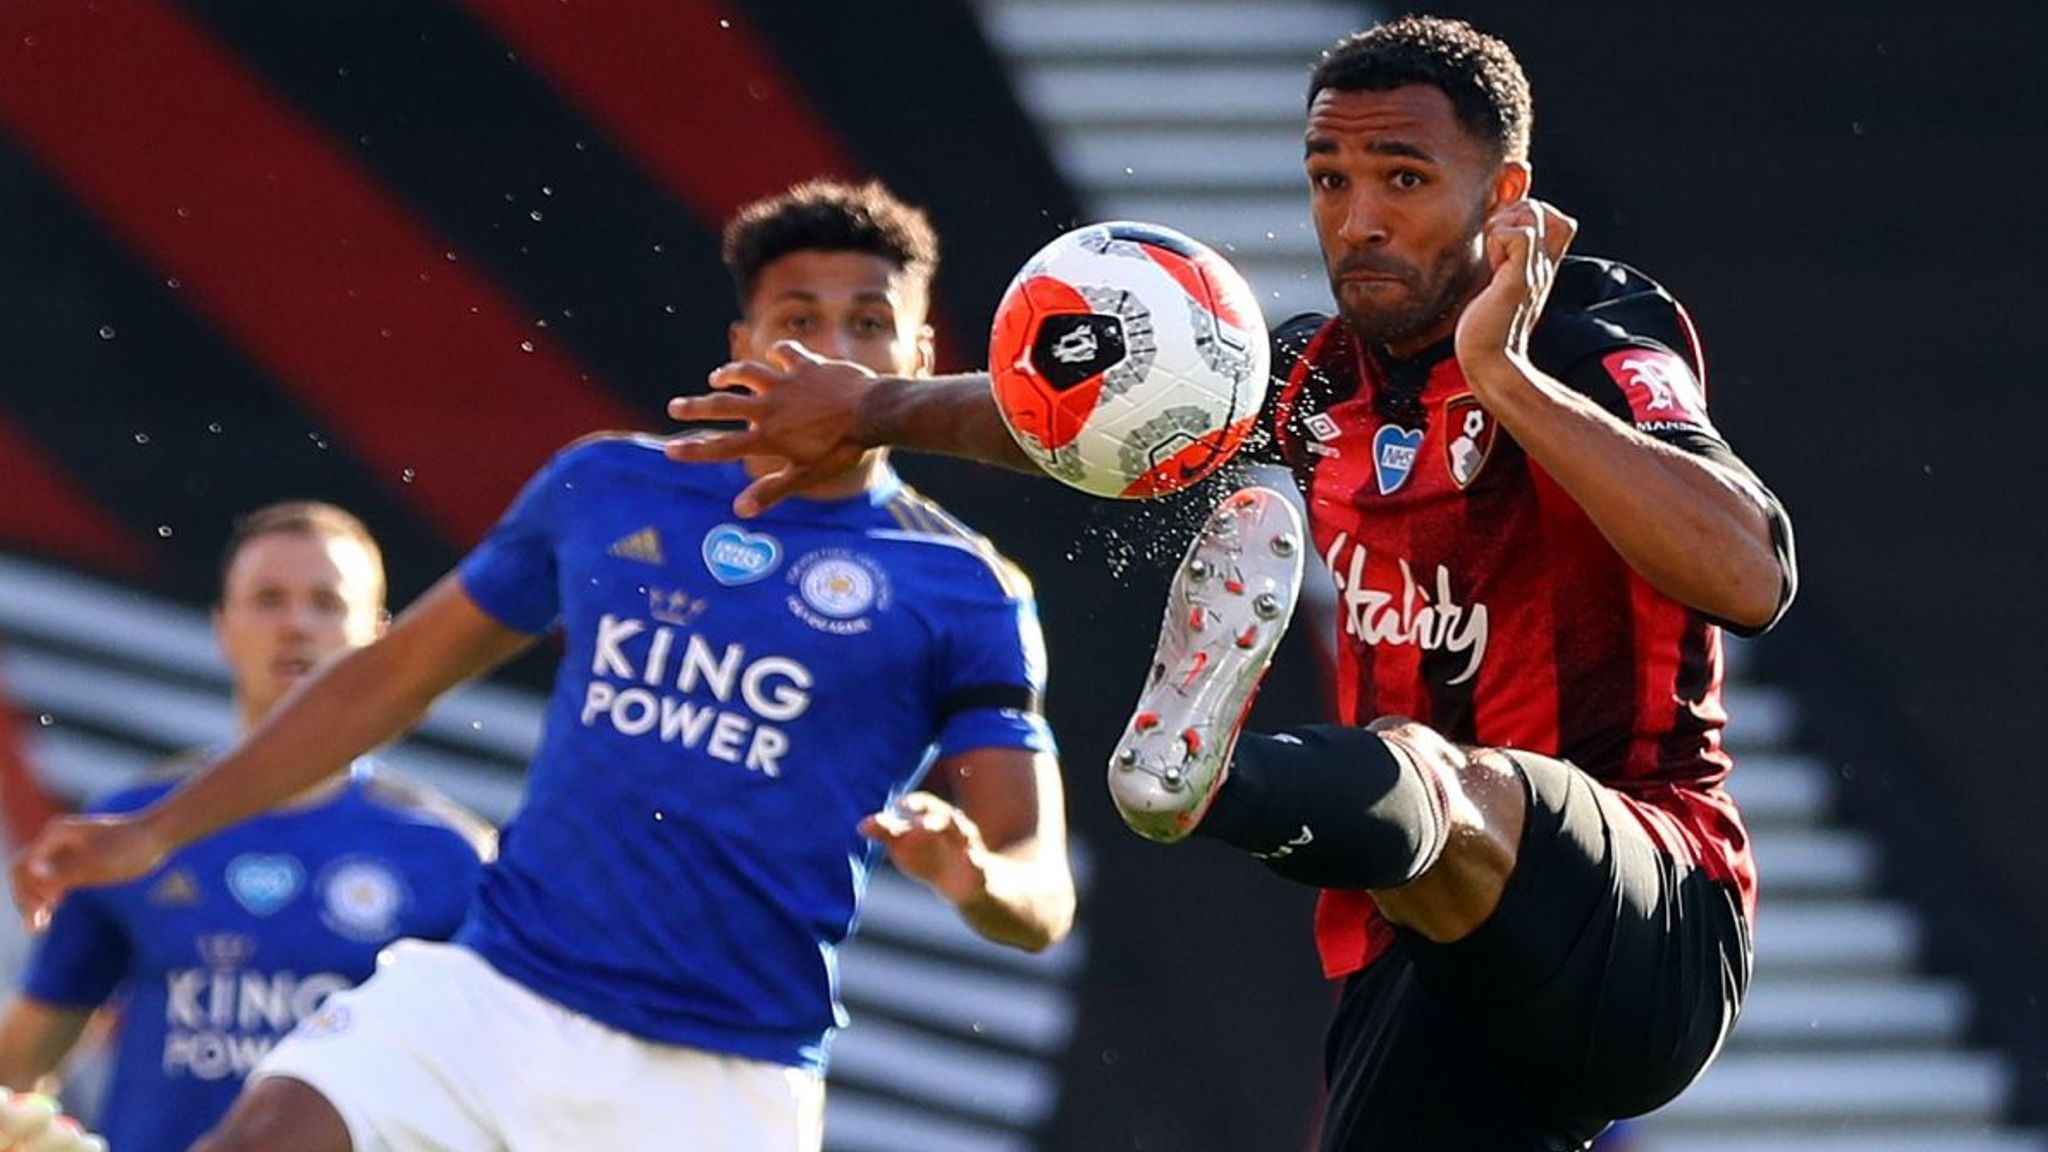 Portsmouth v bournemouth betting preview che tao sung tu buy bitcoins